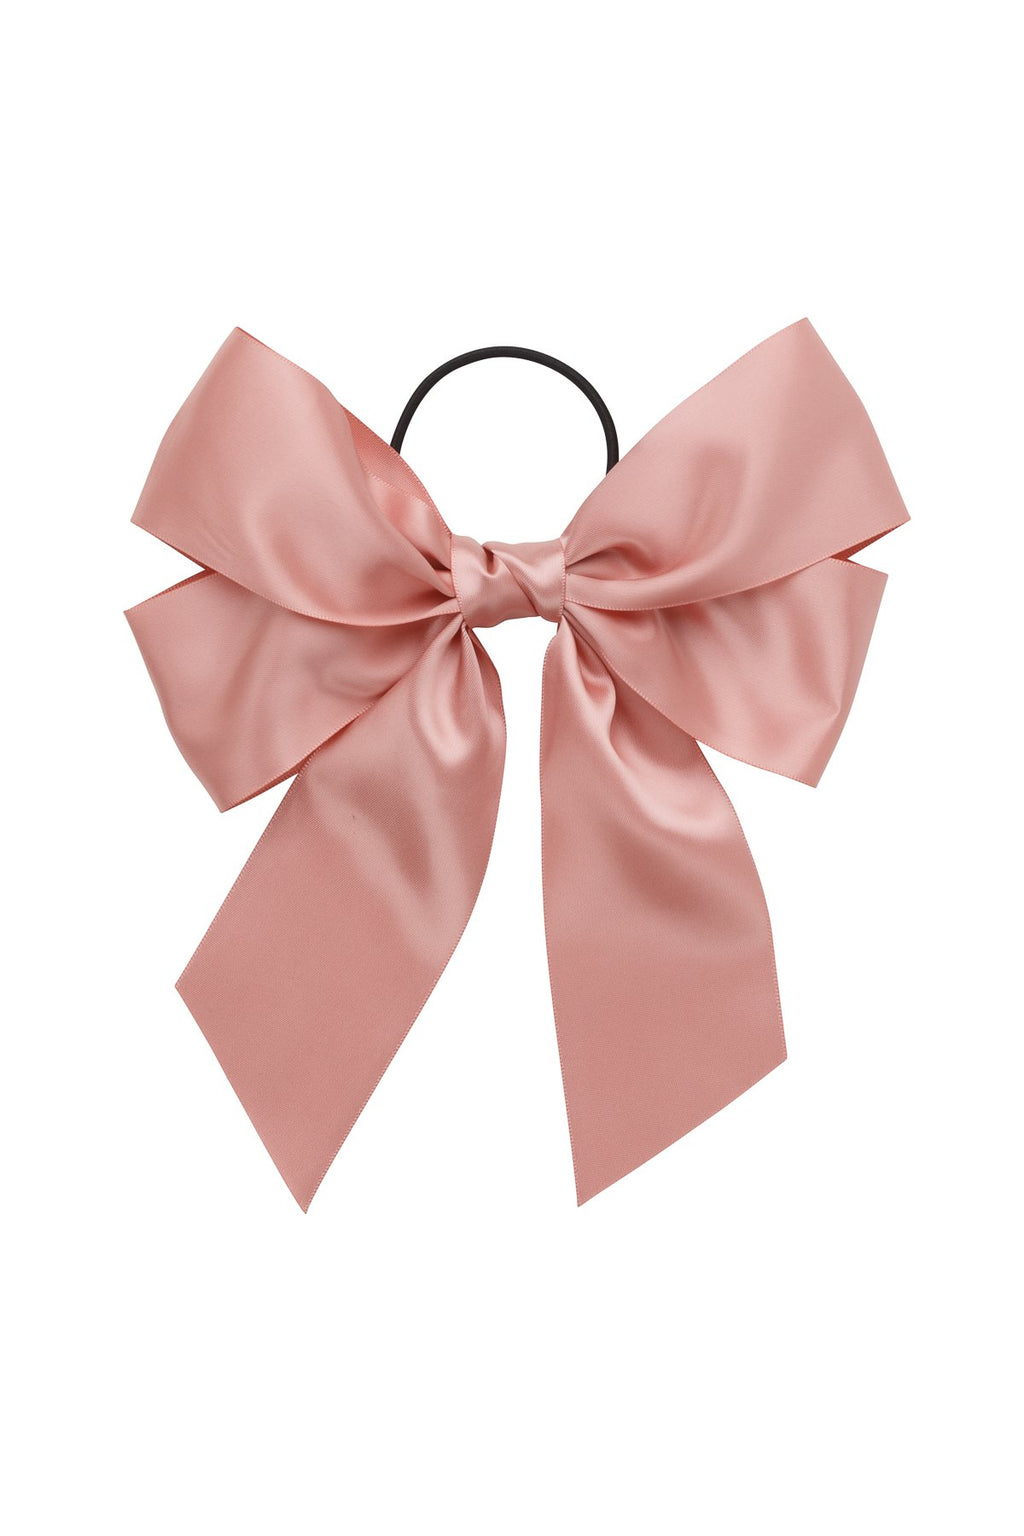 Oversized Bow Pony/Clip - Sweet Nectar - PROJECT 6, modest fashion